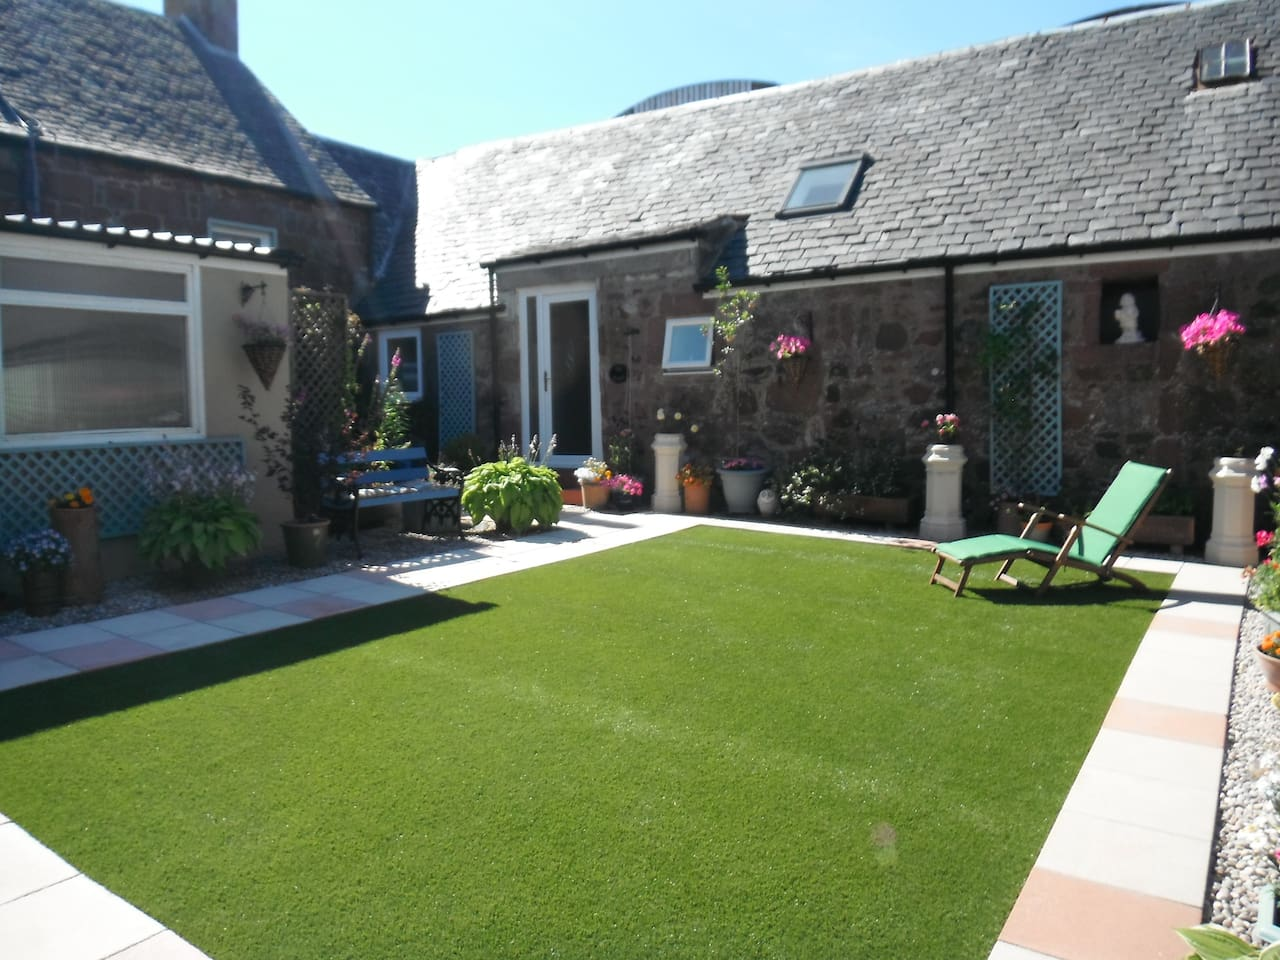 Private & Exclusive enjoy The Festive Season at The Bothy on the beautiful Isle of Cumbrae